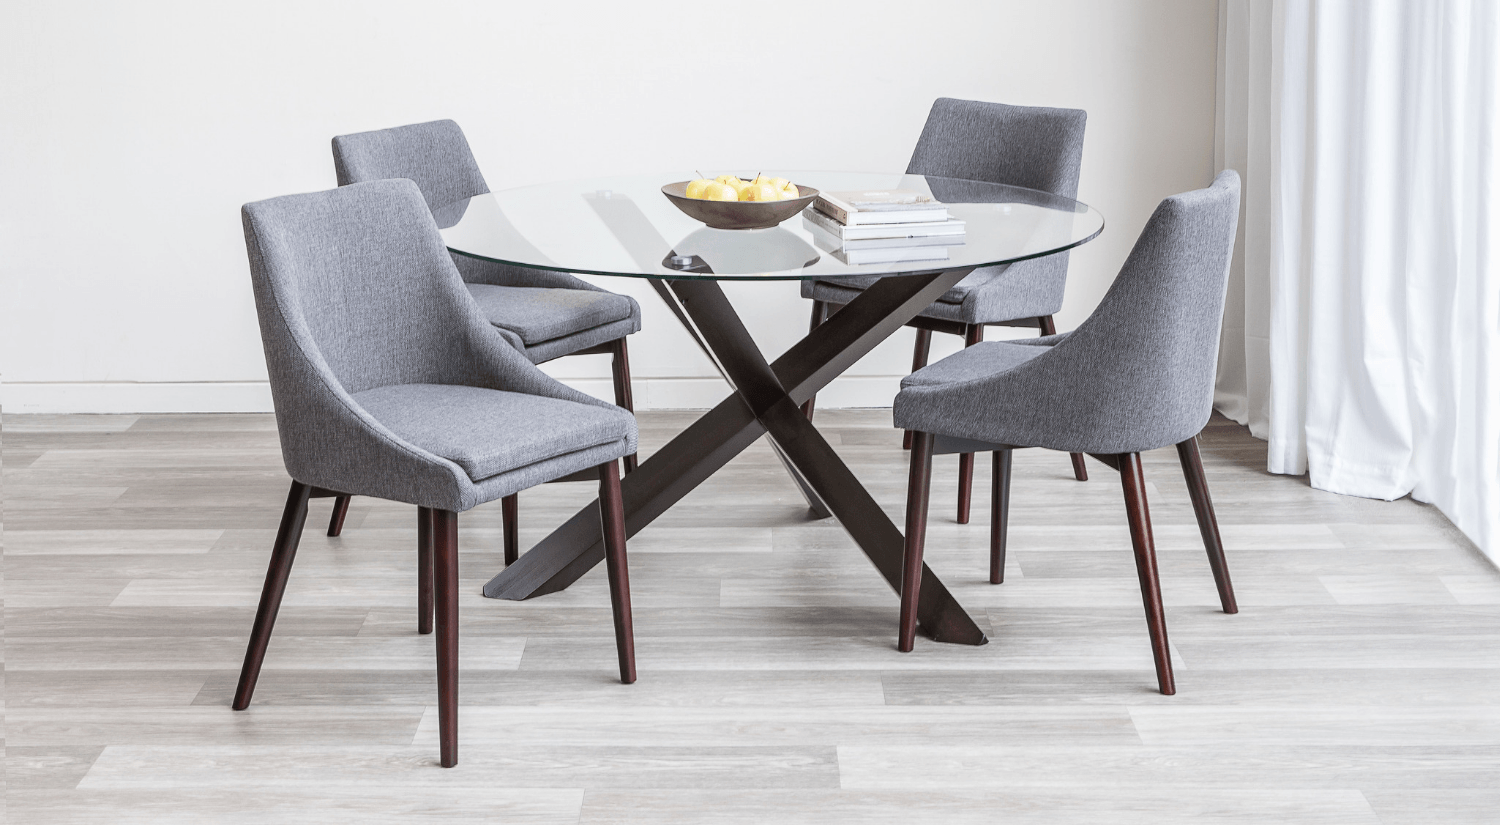 Circular glass dining room table with four grey fabric chairs.